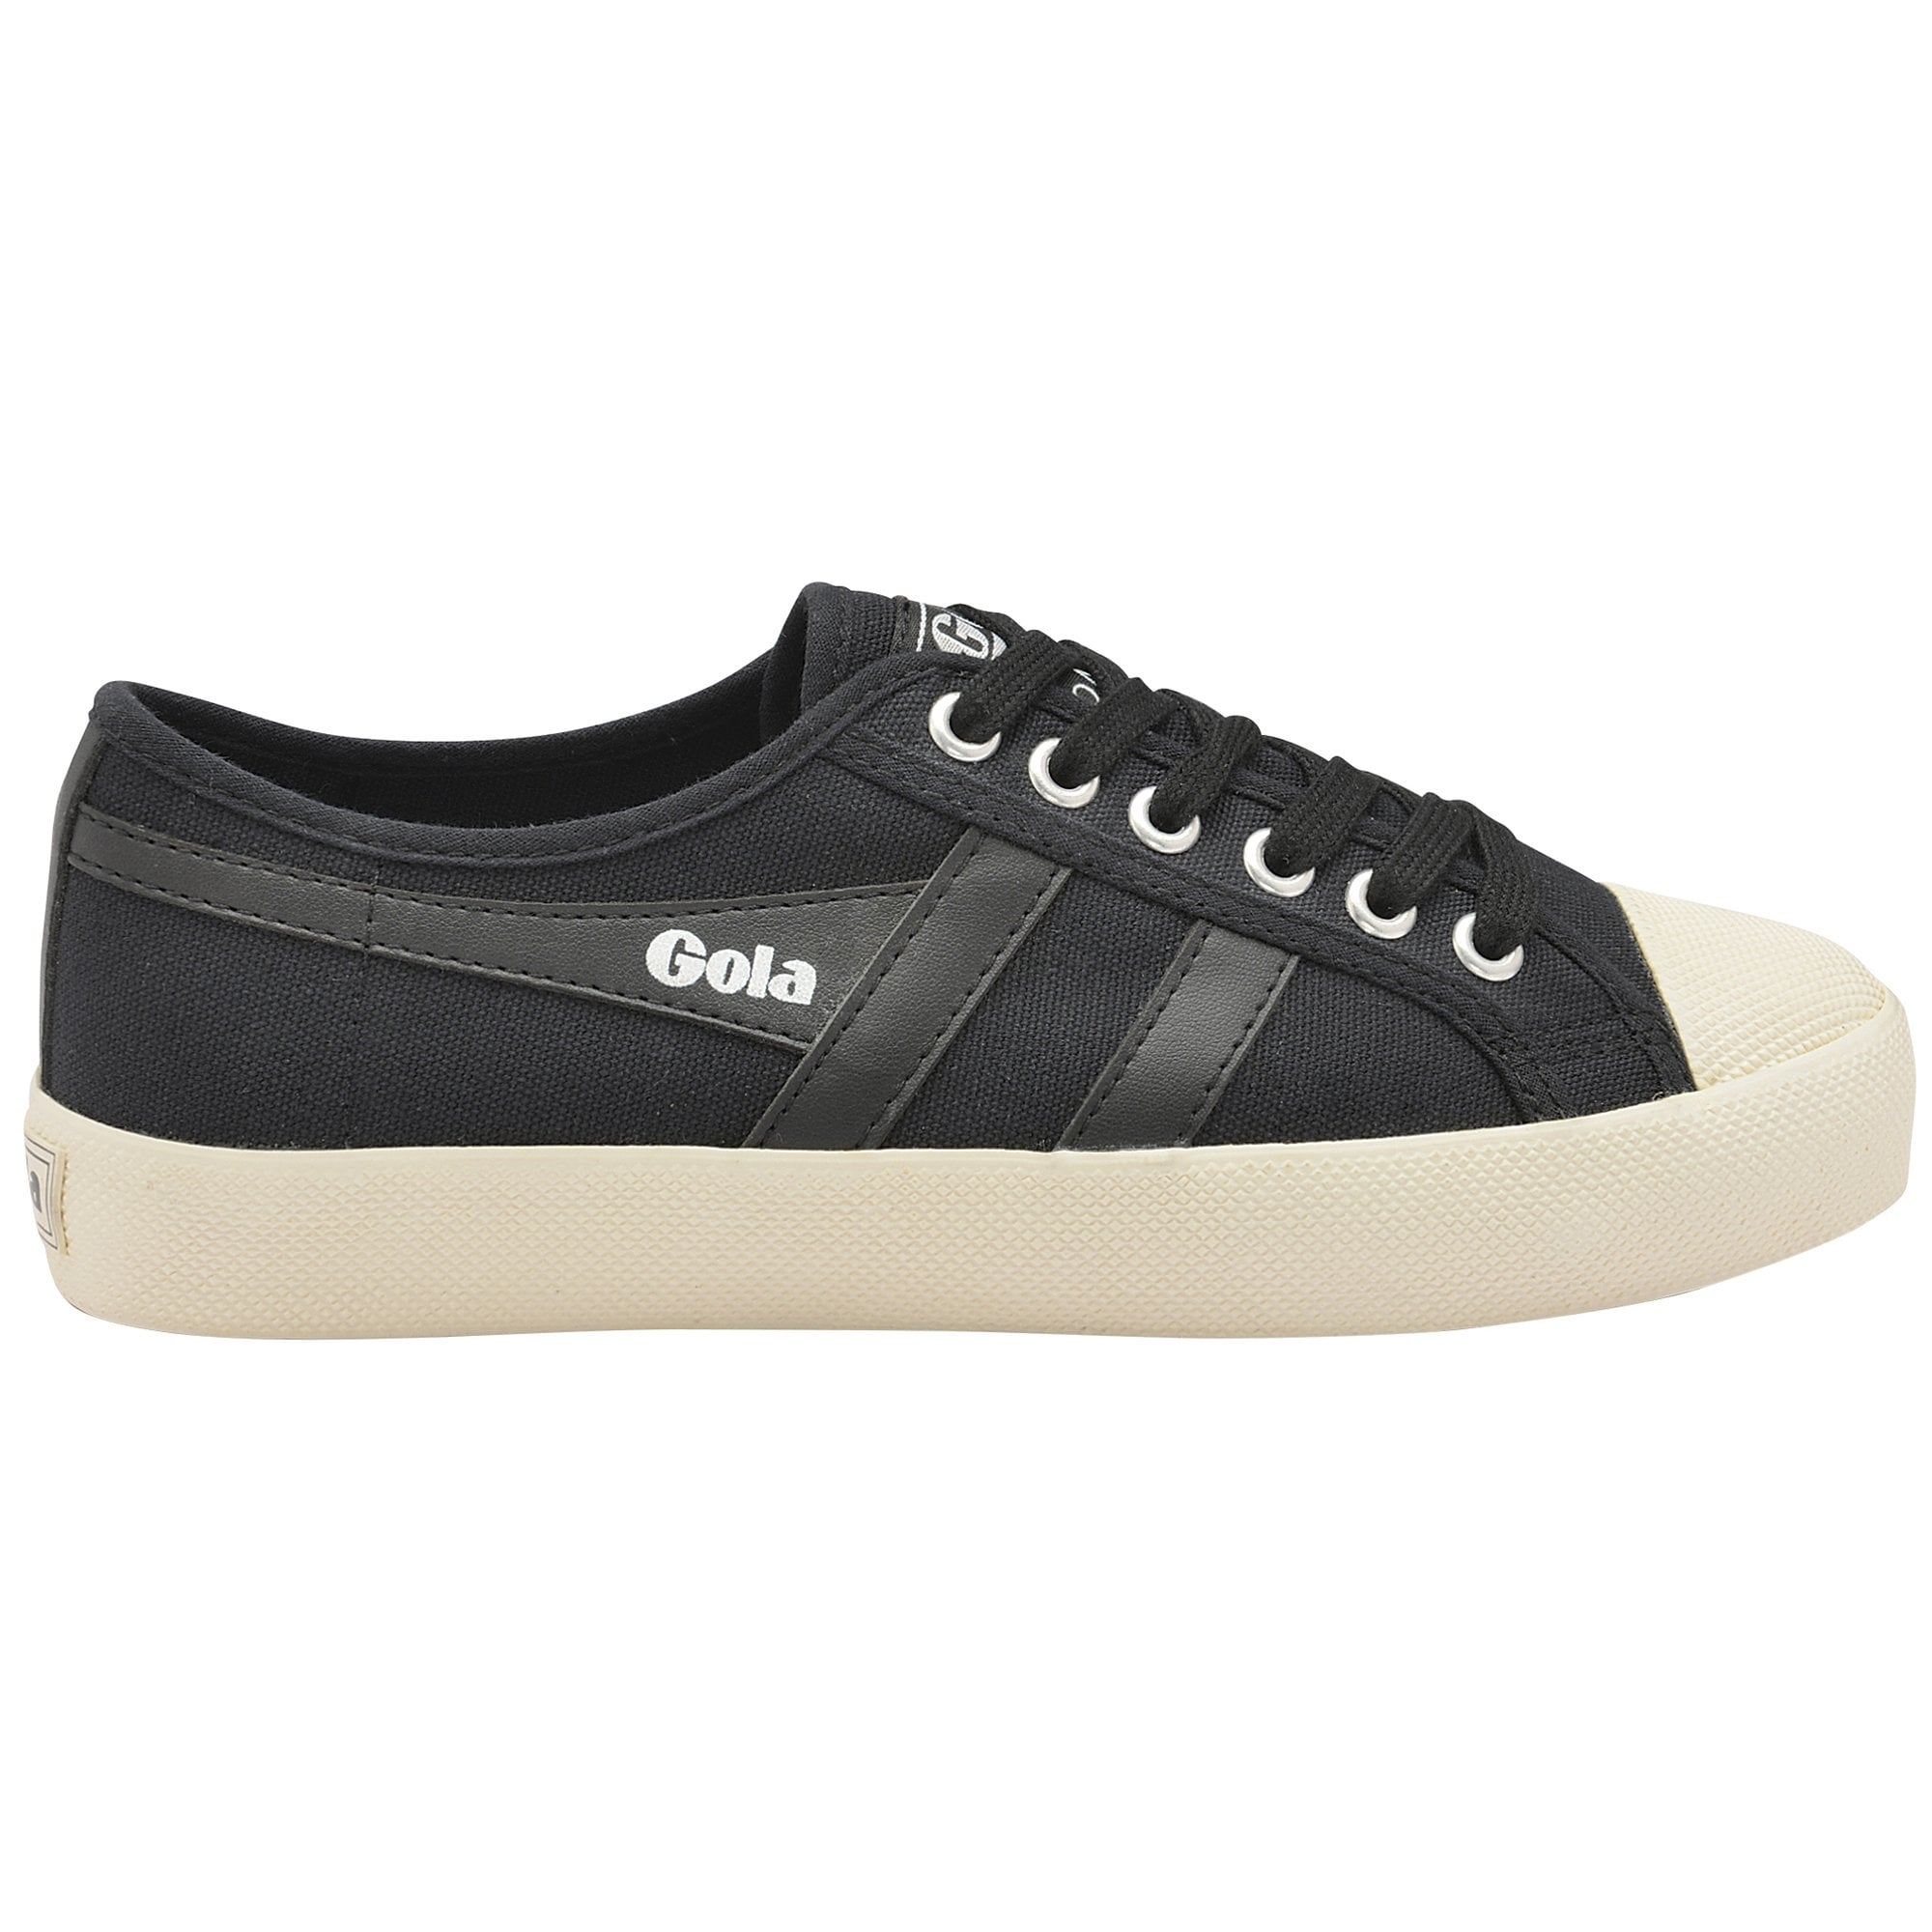 Buy Gola womens Coaster trainers in